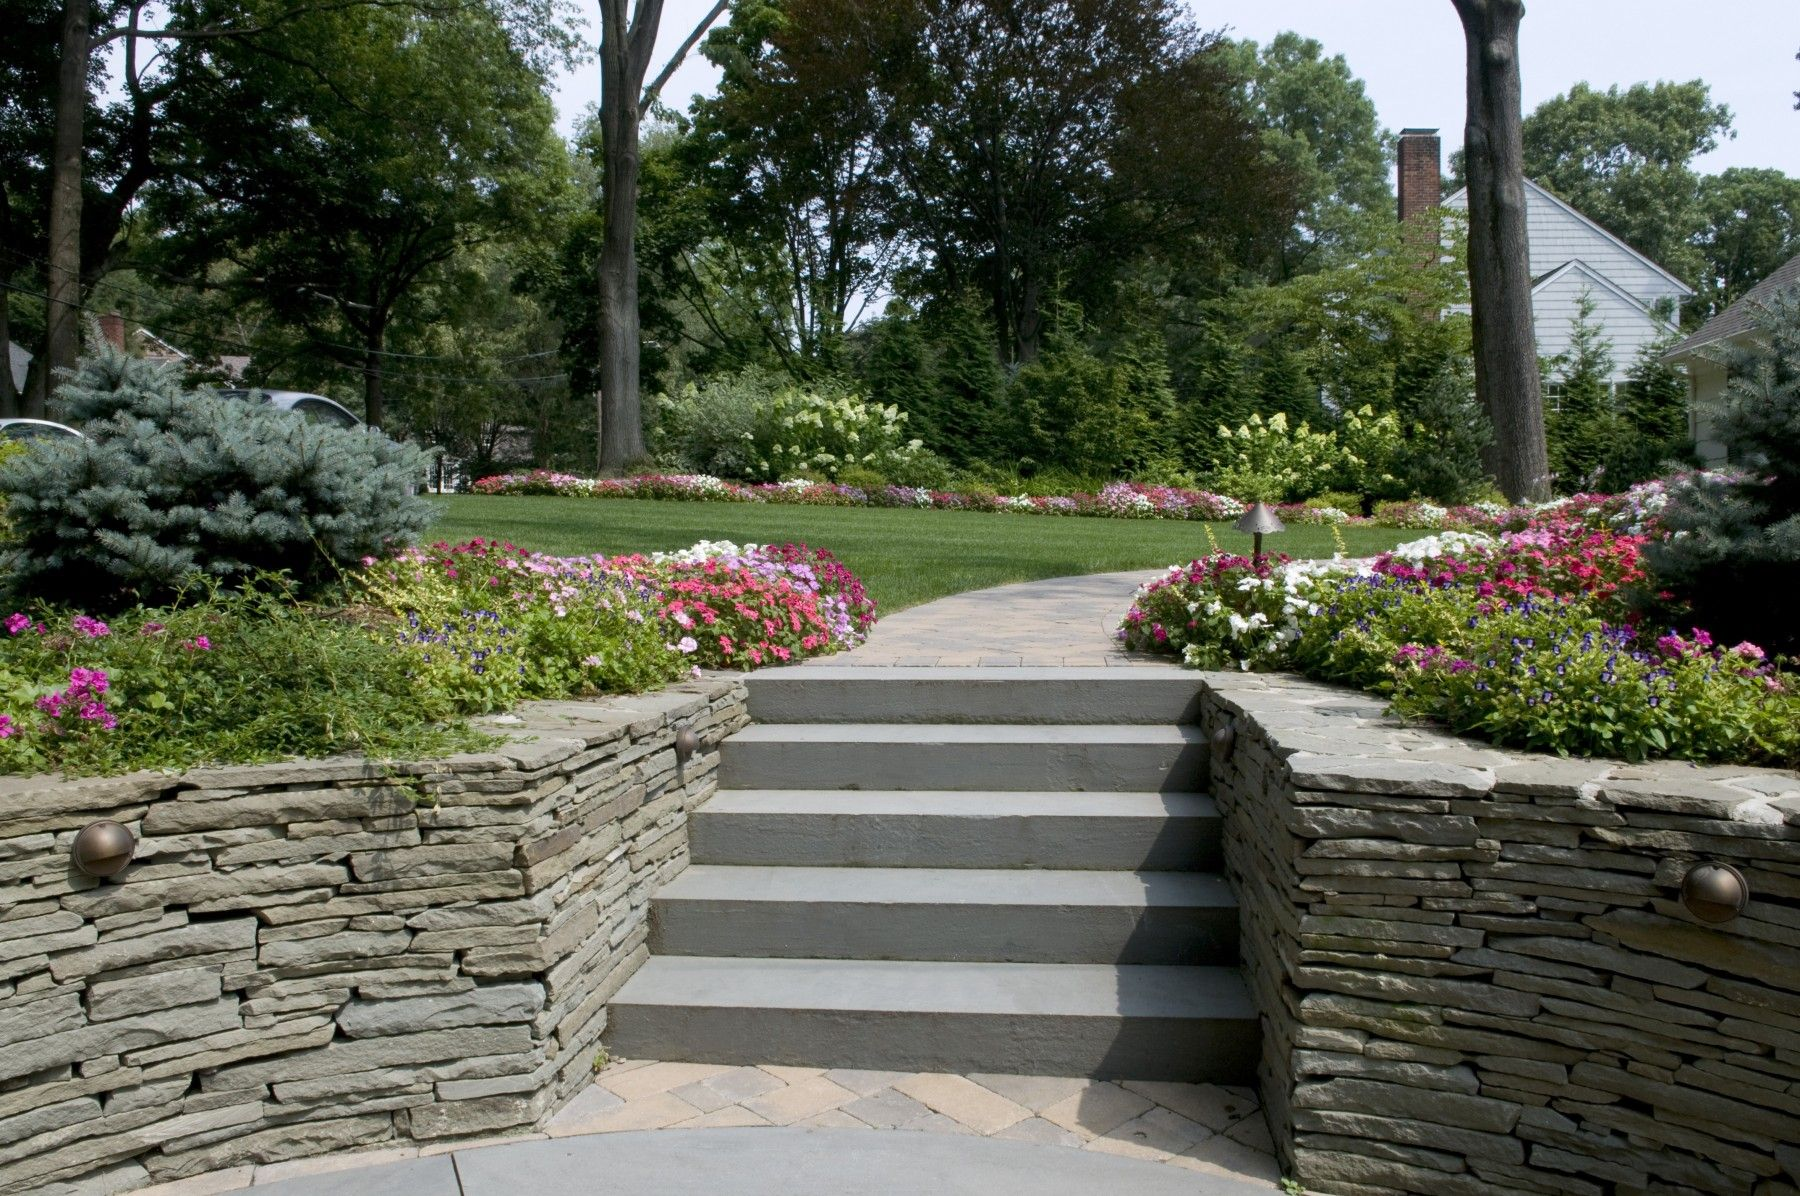 Best Landscape Design Apps Ipad Iphone Android Diy Homedecor Opinions For Lovely Homes Decoration Ho In 2020 Garden Design Backyard Landscaping Back Gardens